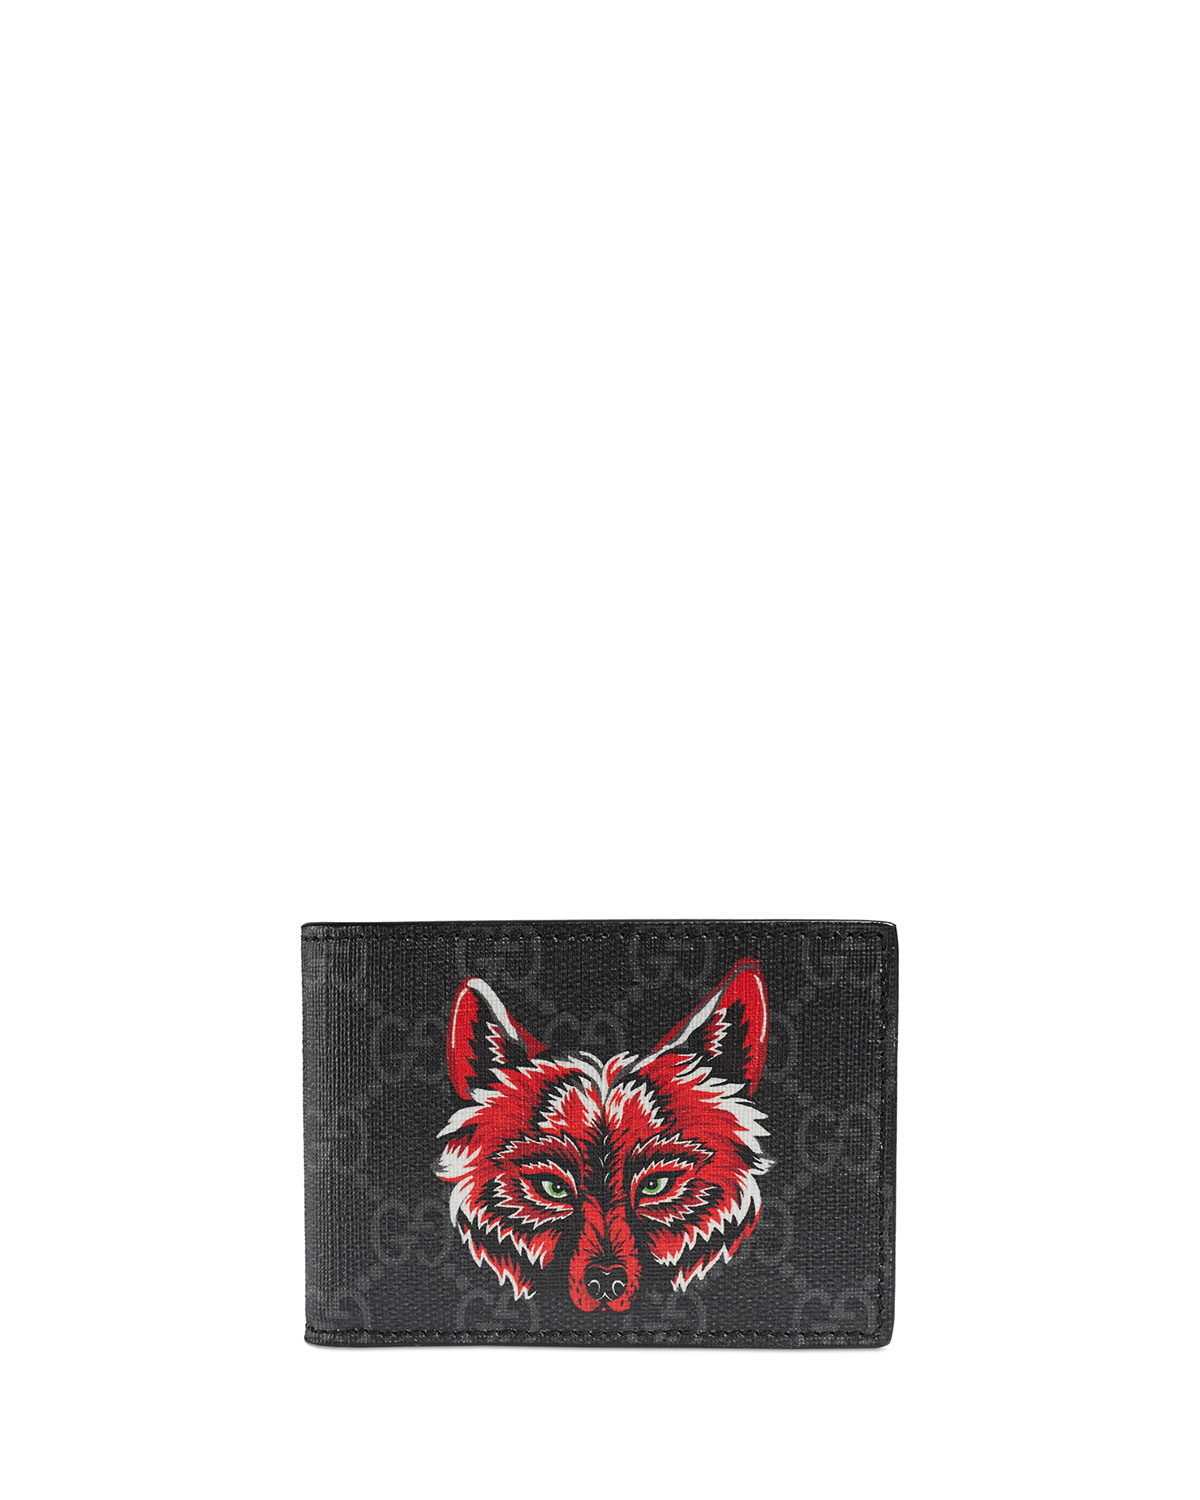 2bd933312f05 Gucci Men's Wolf-Print GG Supreme Wallet | Neiman Marcus